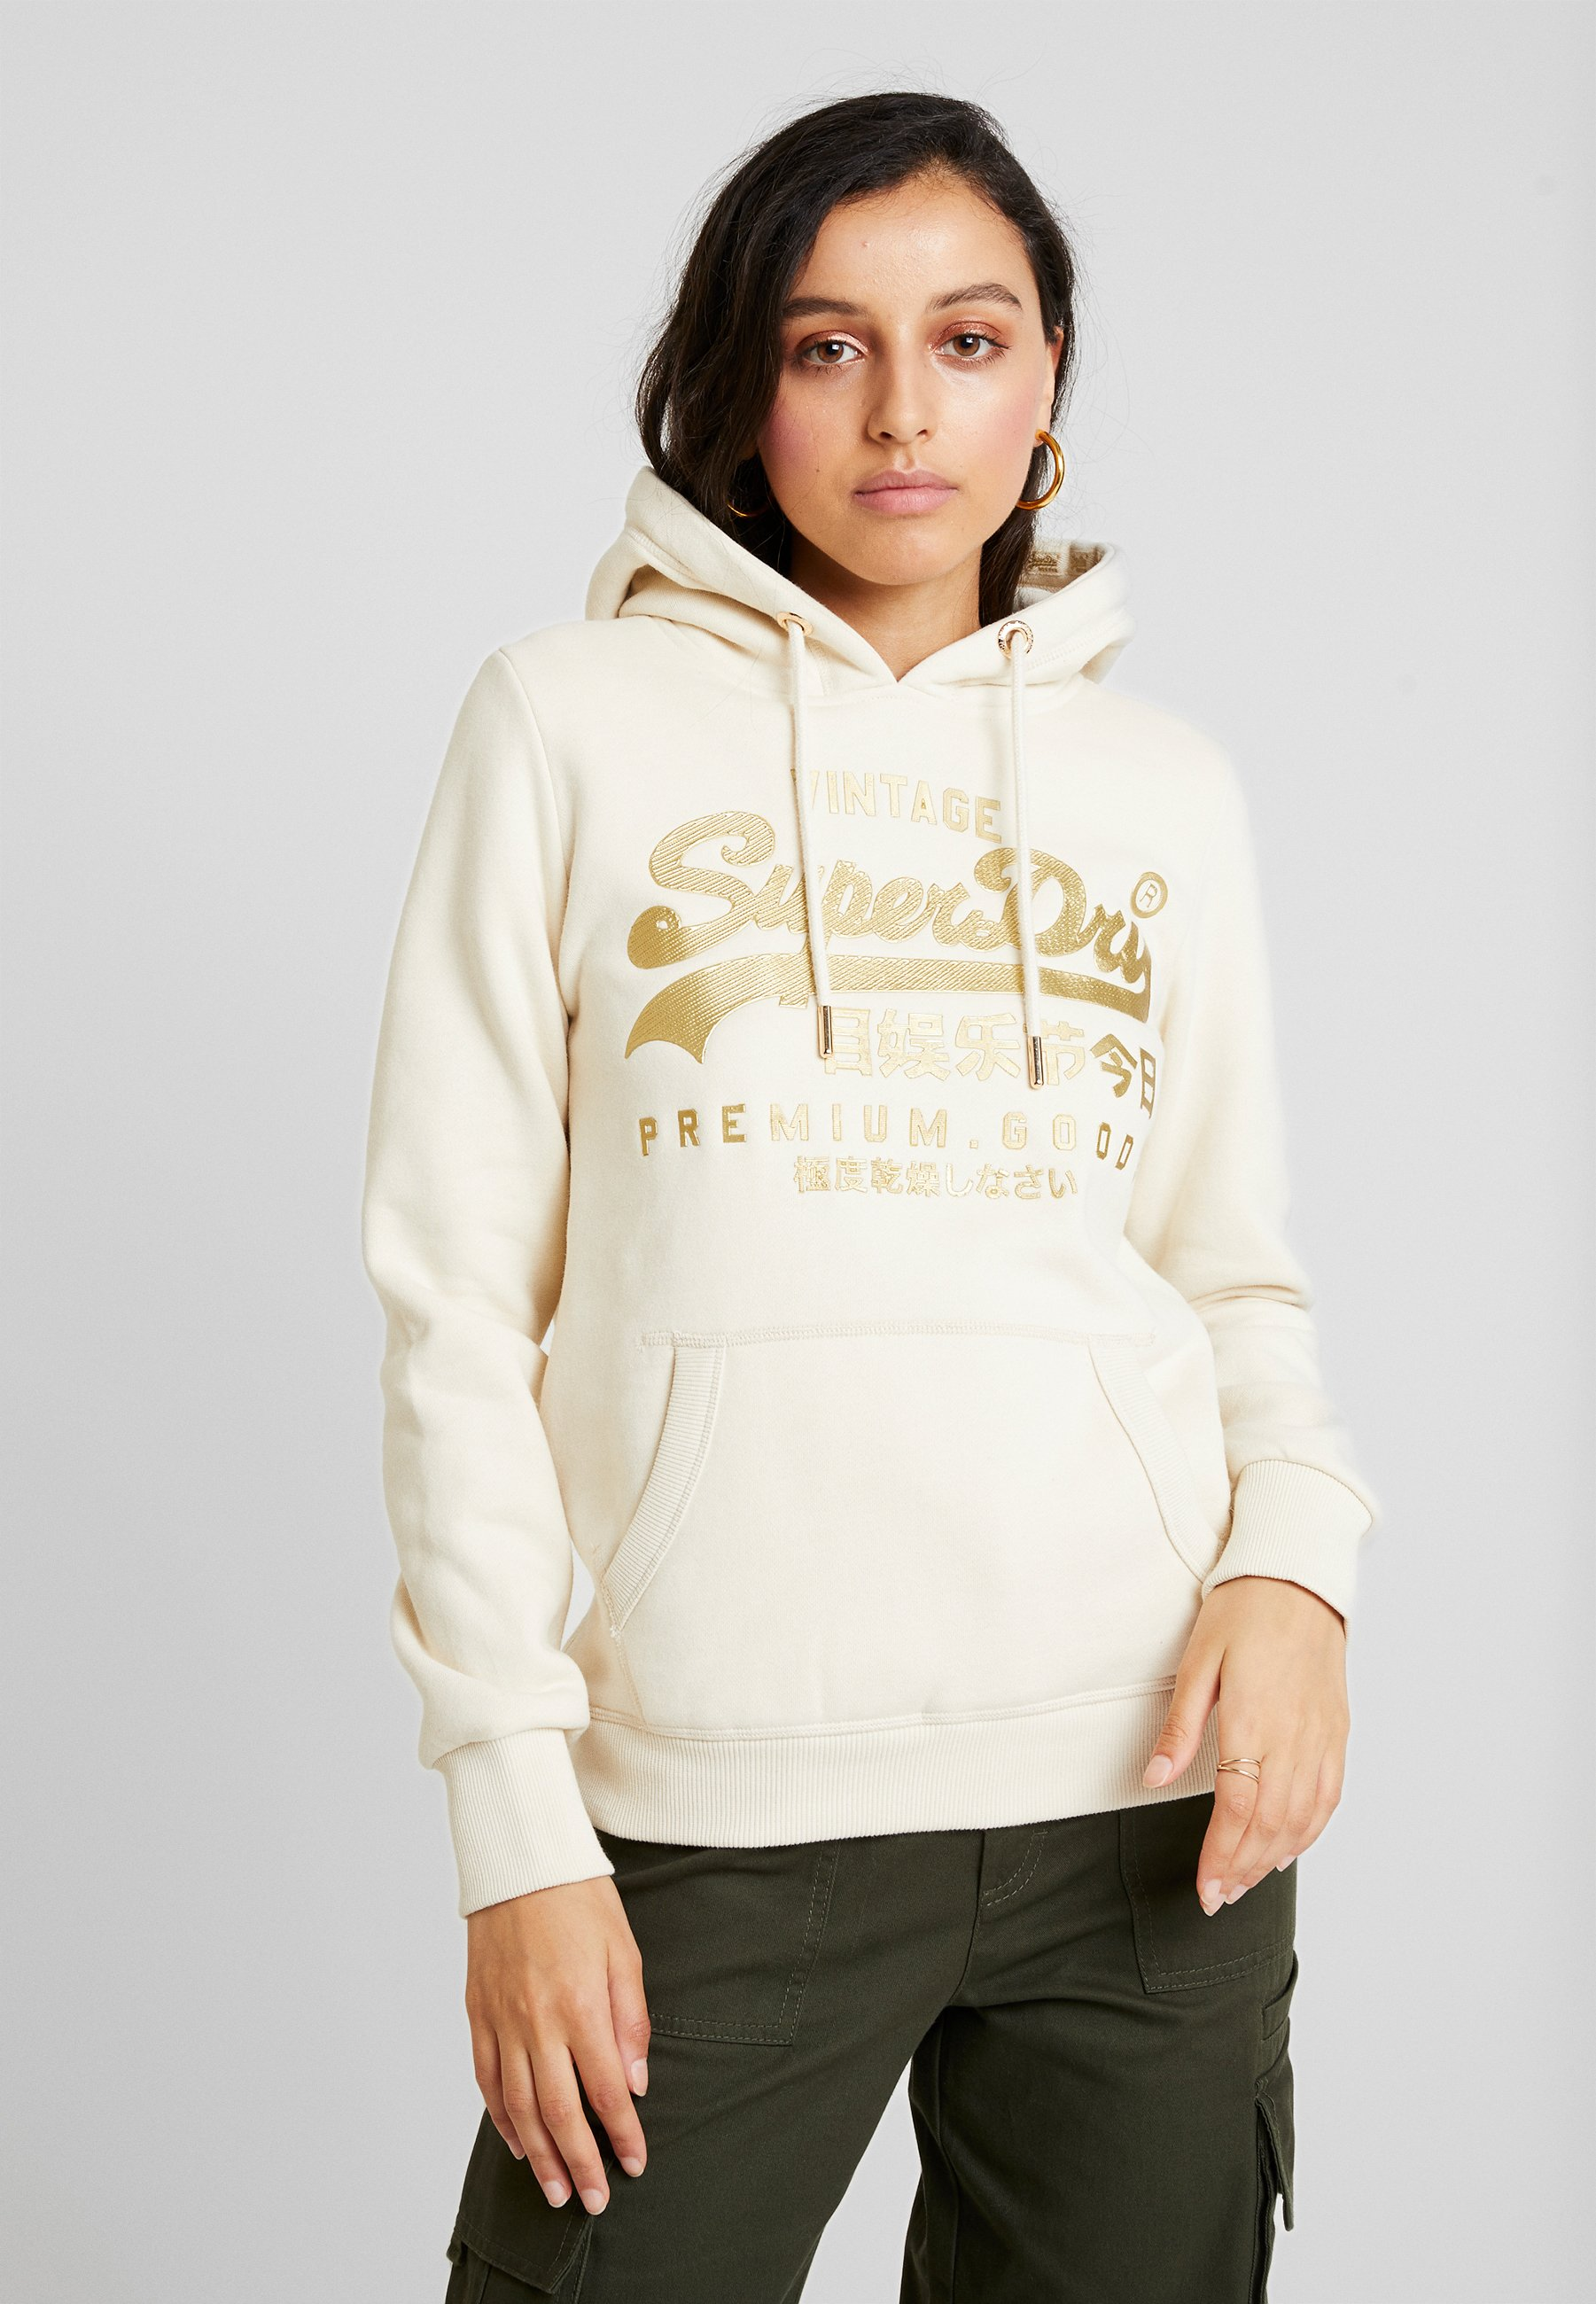 Logo Capuche Vintage Luxe White Superdry HoodSweat Soft À Entry EH2DIbYeW9